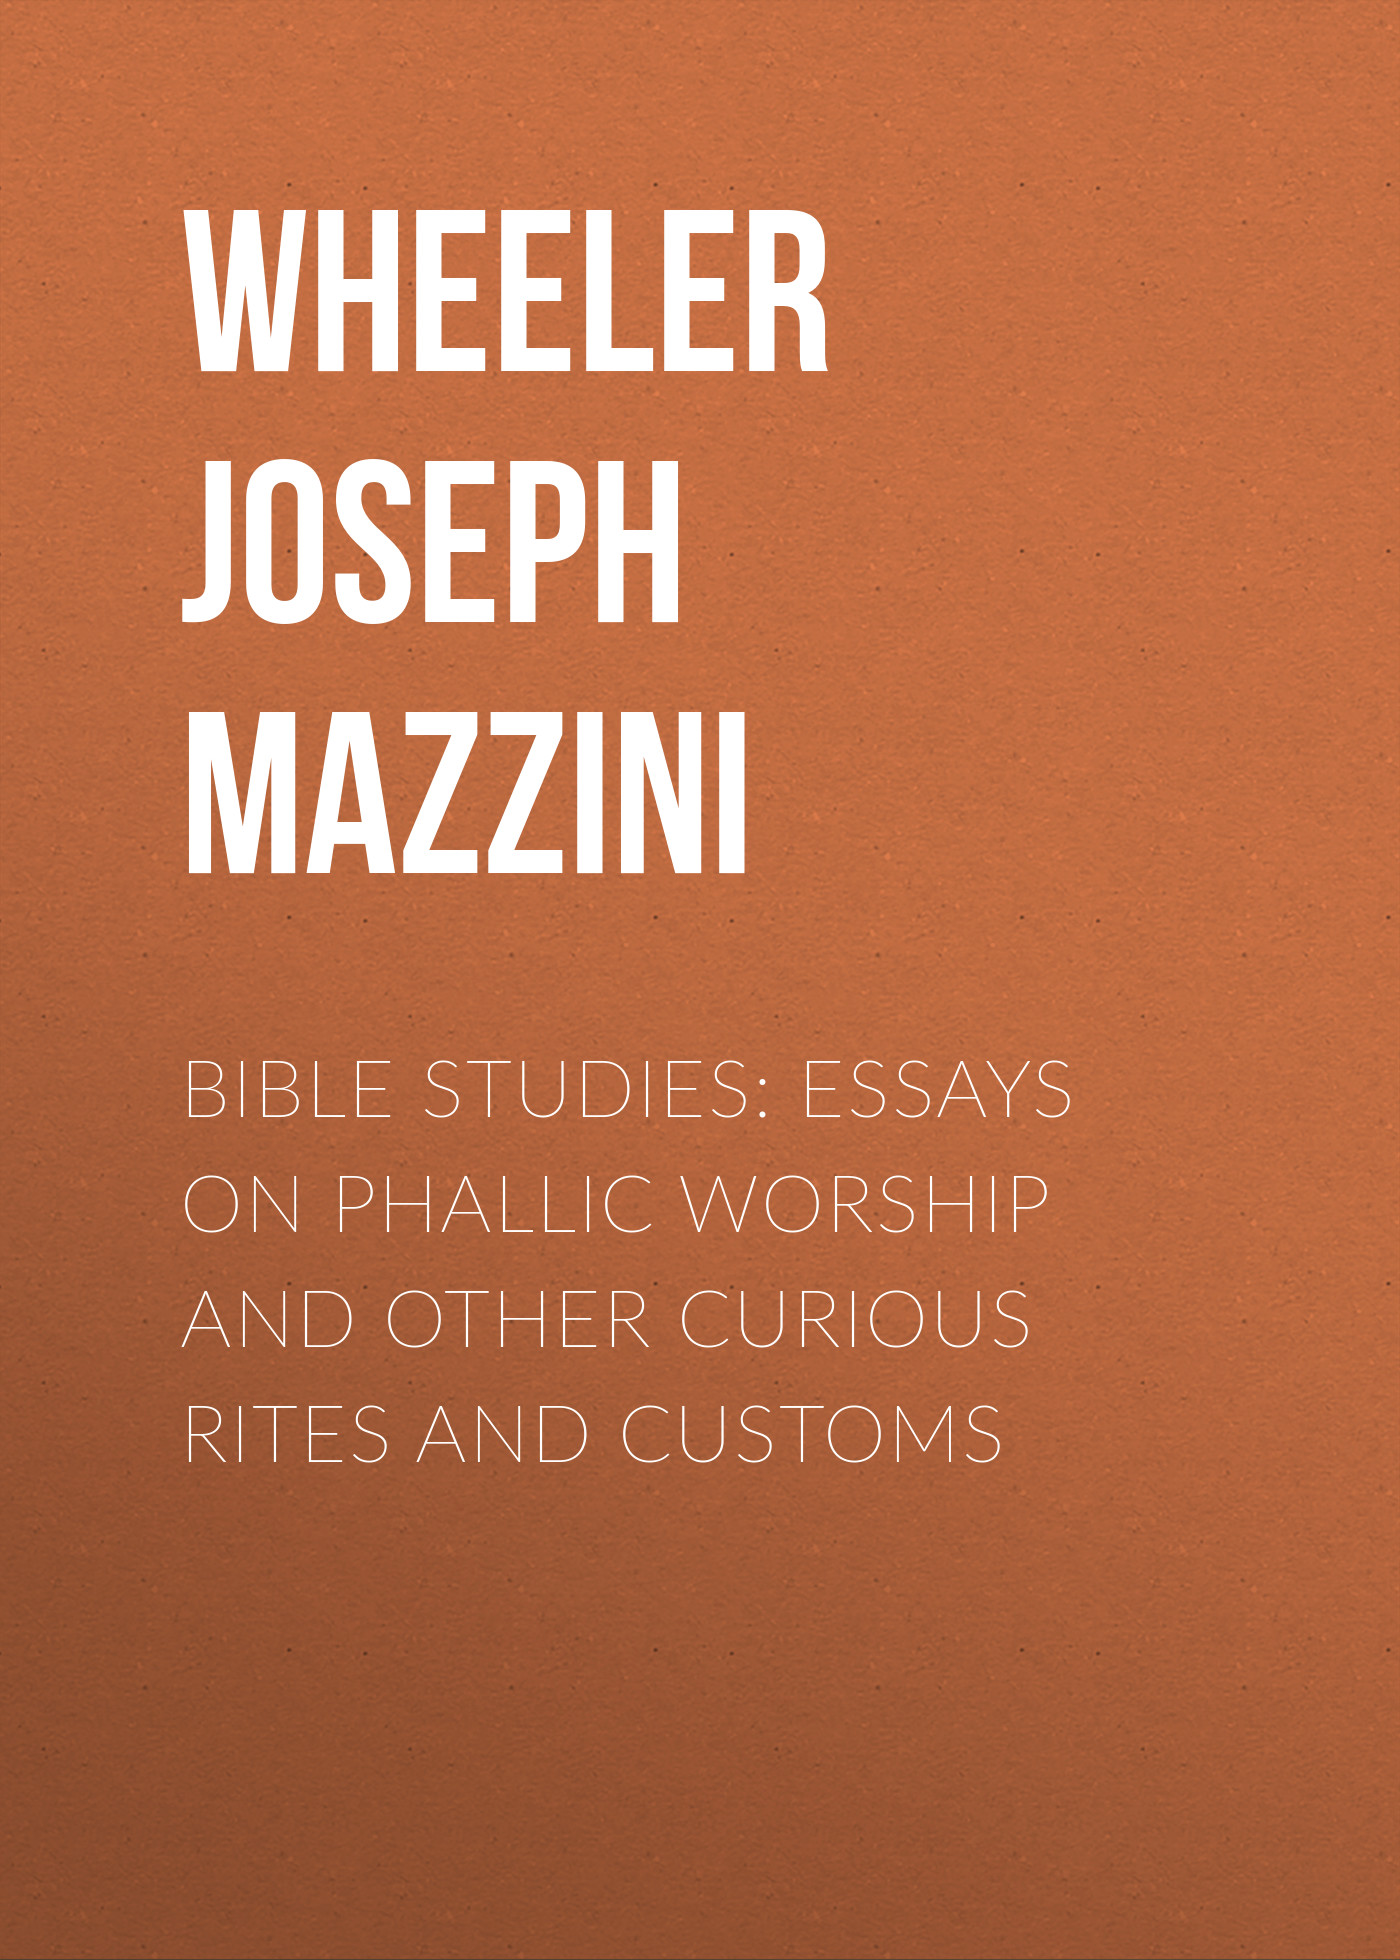 Wheeler Joseph Mazzini Bible Studies: Essays on Phallic Worship and Other Curious Rites and Customs death rites and rights